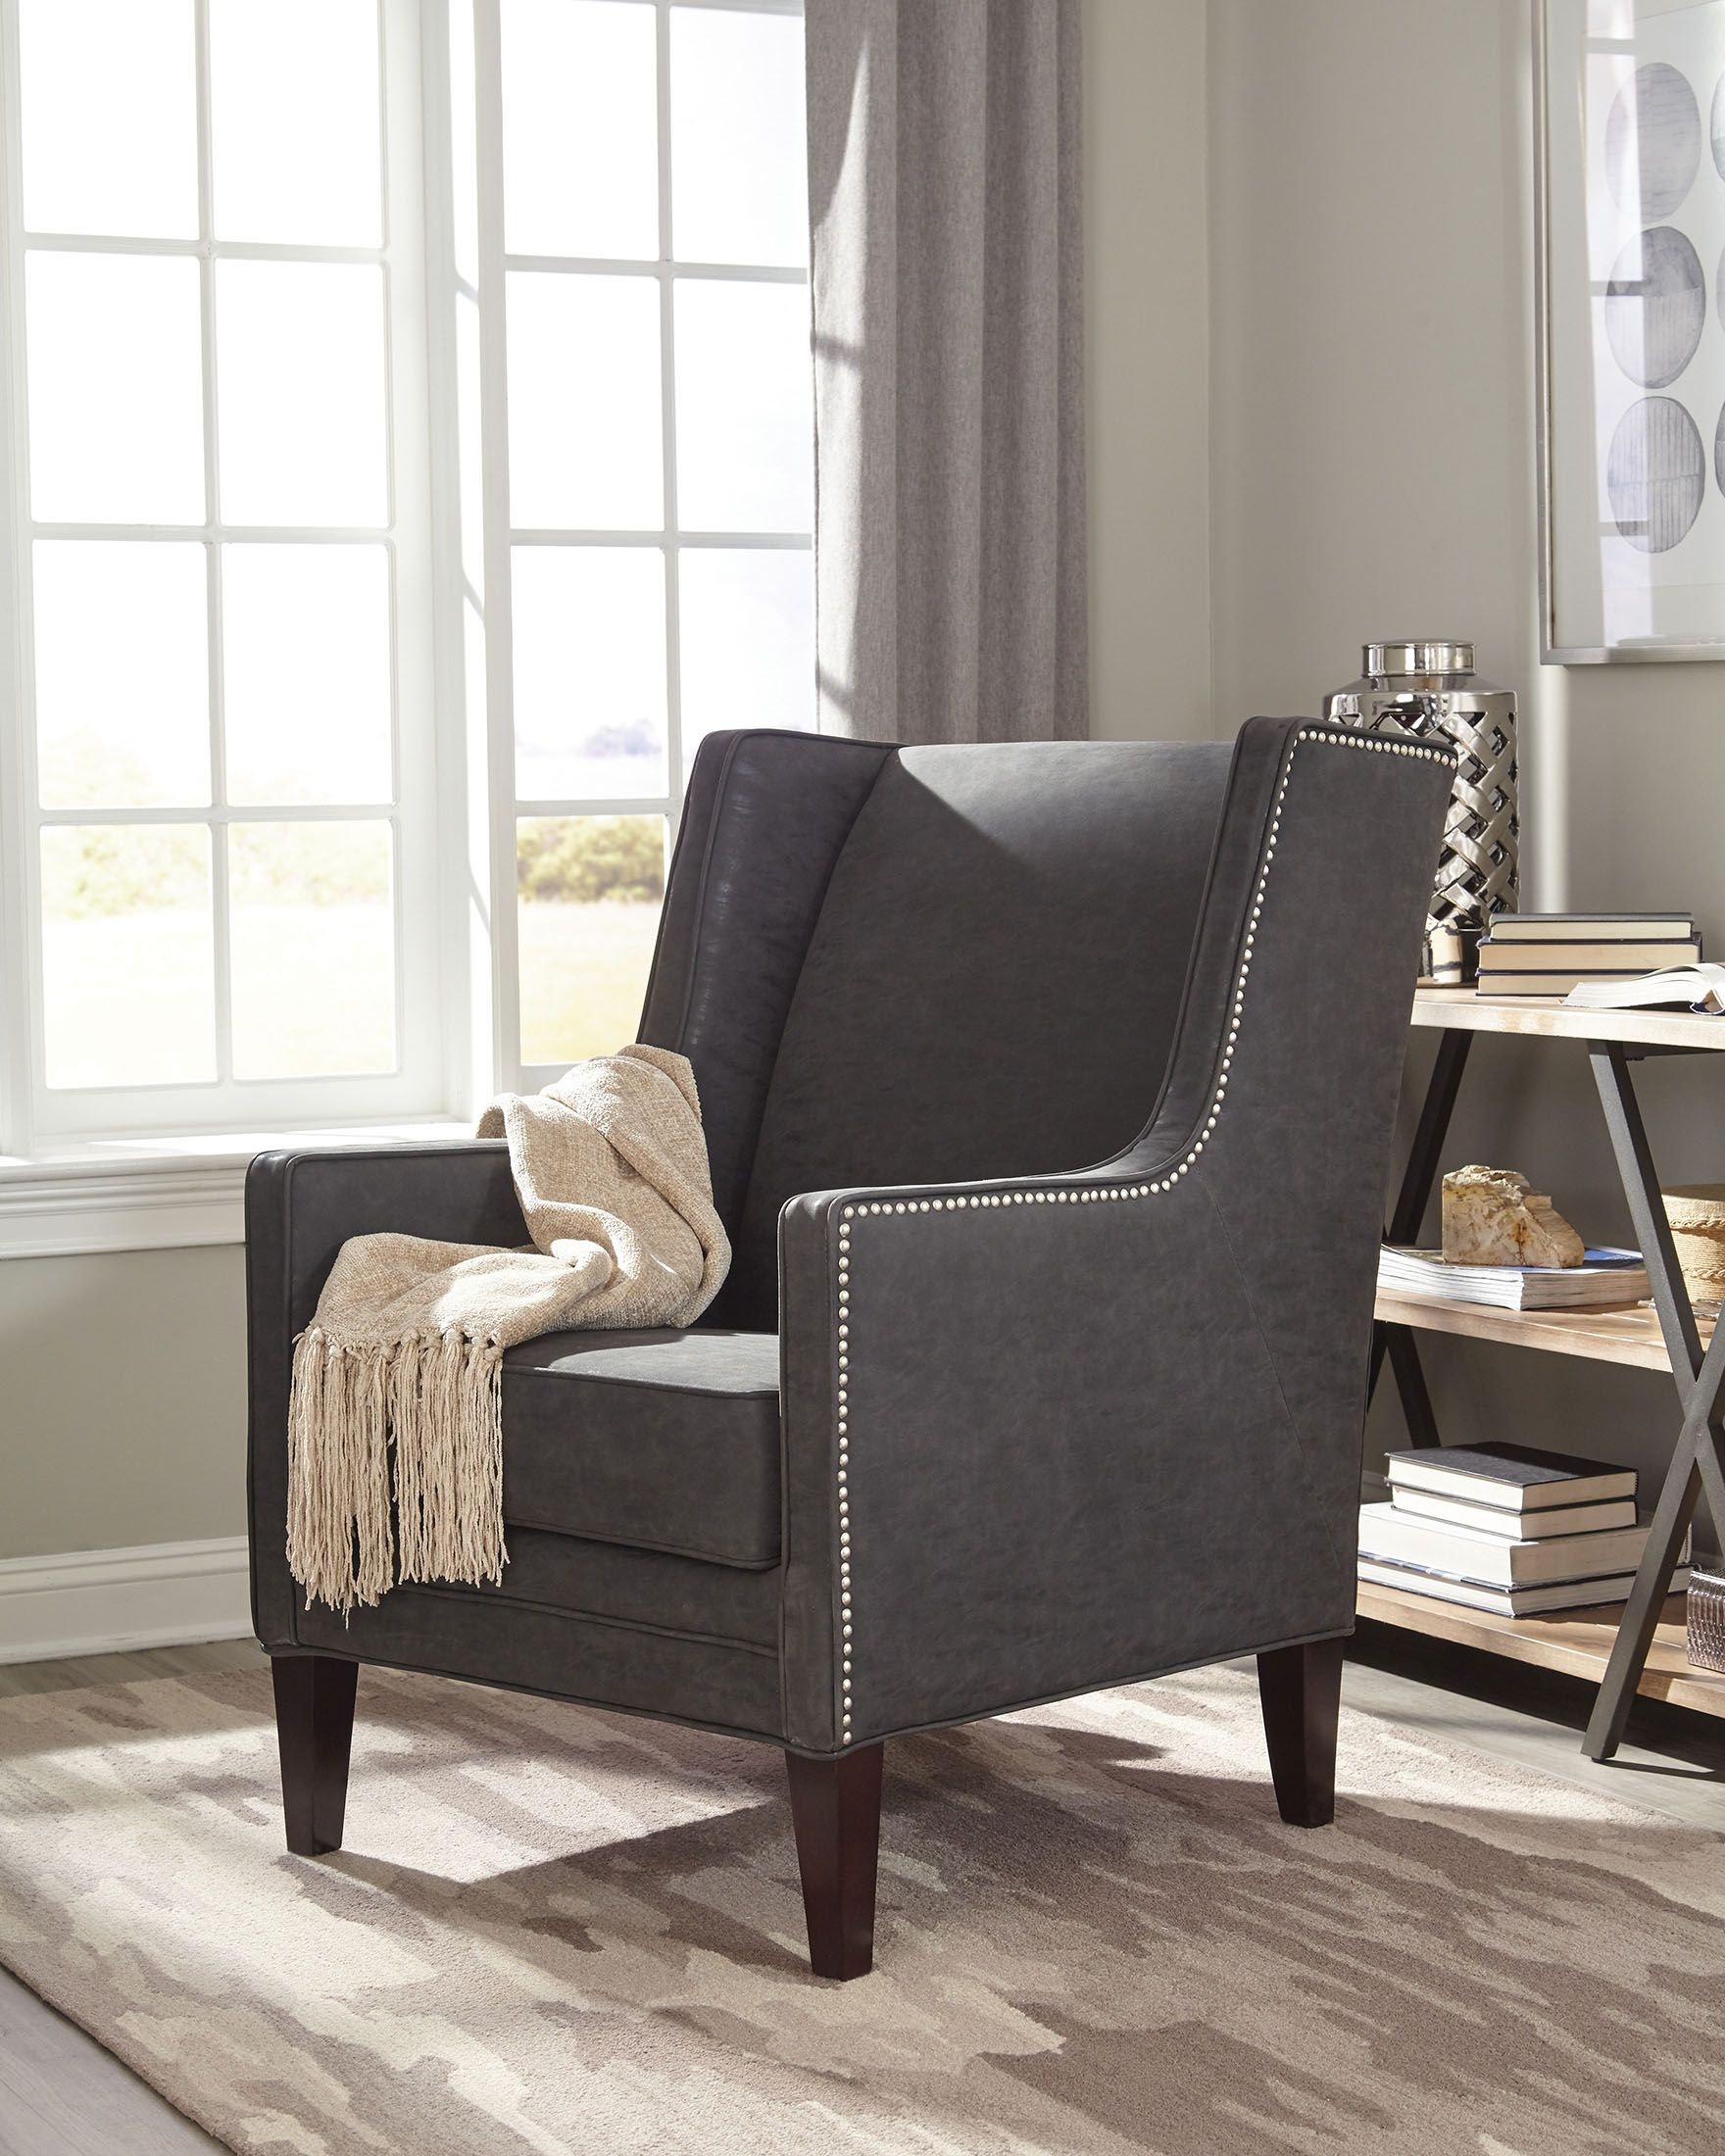 Donny Osmond Home 902988 Charcoal Fabric Accent Chair Fabric